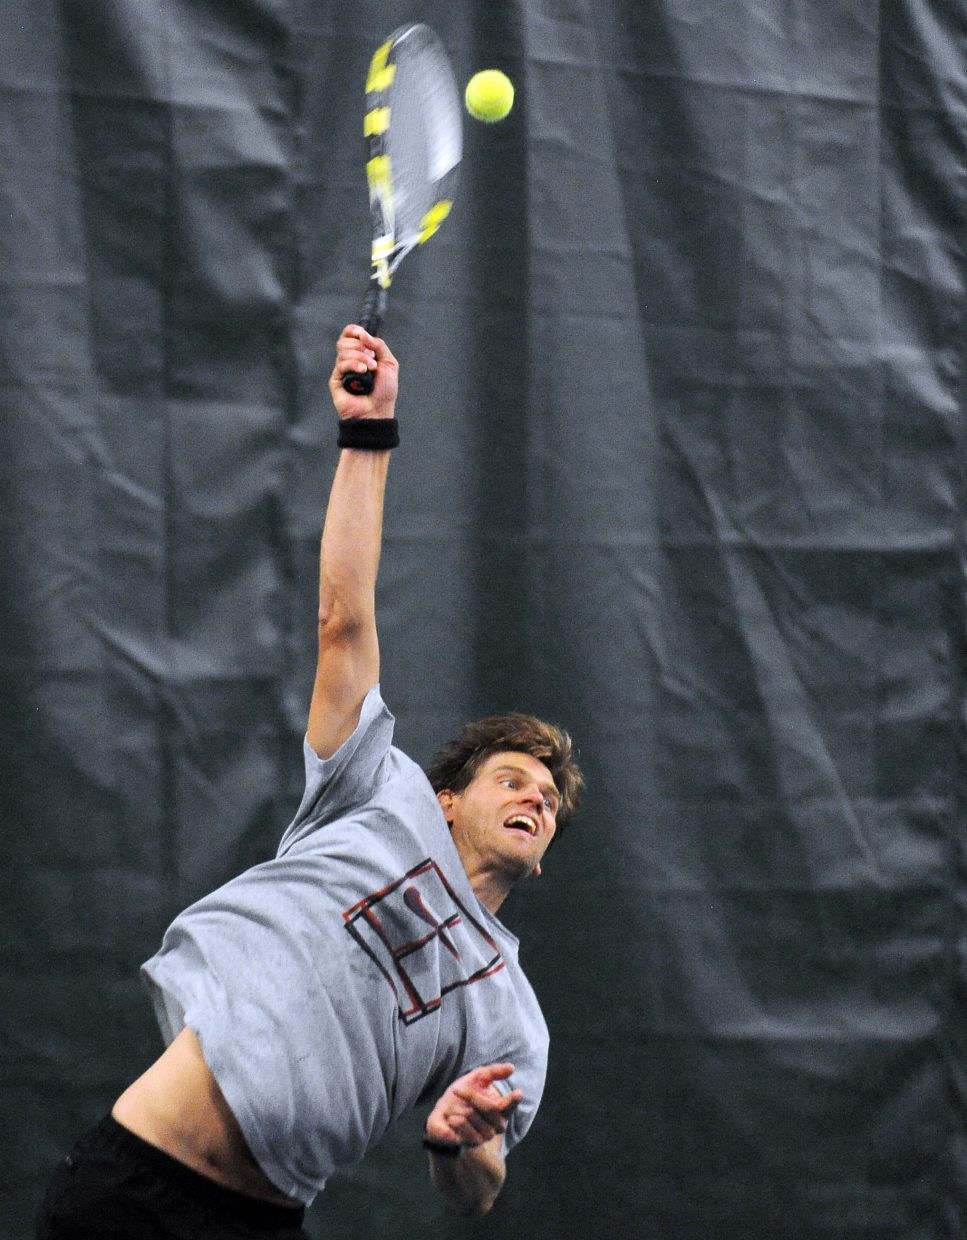 Louis Nijsten serves the ball Sunday during the Steamboat NTRP tournament at the Tennis Center in Steamboat Springs. Nijsten, of Hayden, partnered with Grice Hooker, of Steamboat, to win the top men's double bracket, prevailing in a grueling three-set match.